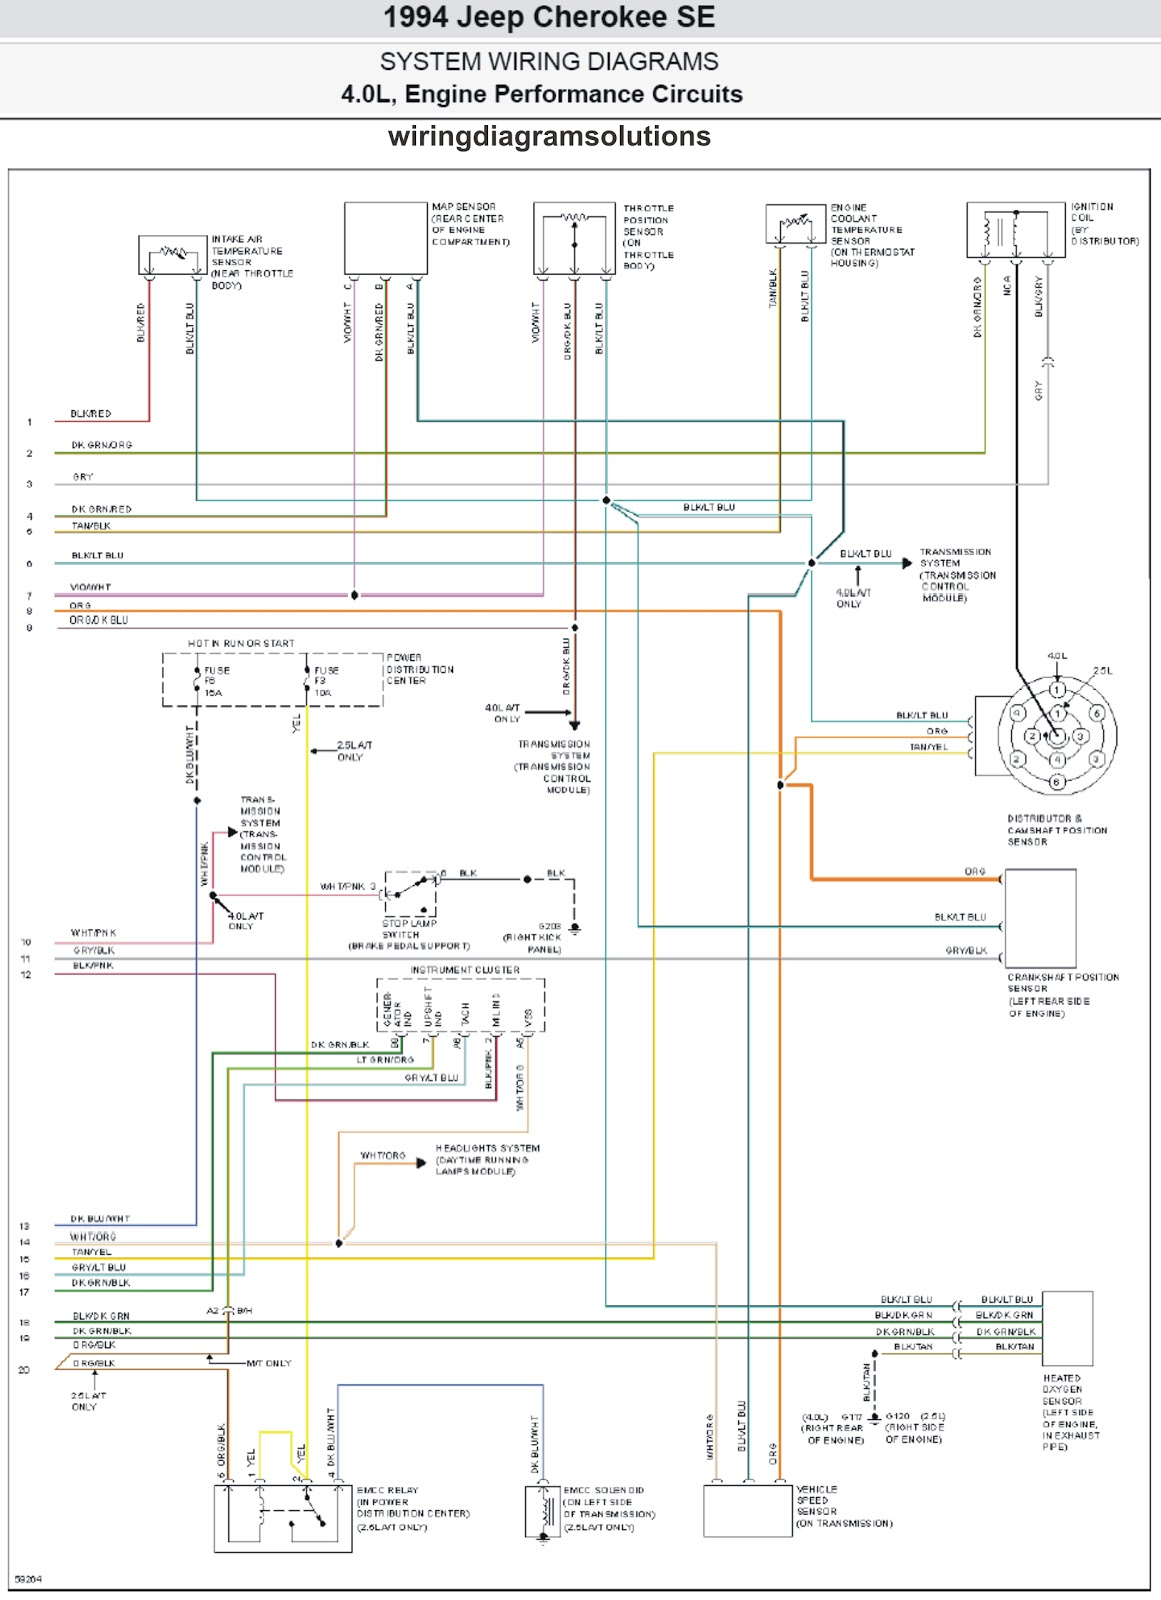 DIAGRAM] 94 Jeep Cherokee Wiring Diagram FULL Version HD Quality Wiring  Diagram - CABLEDIAGRAMS.GENAZZANOBUONCONSIGLIO.ITcablediagrams.genazzanobuonconsiglio.it